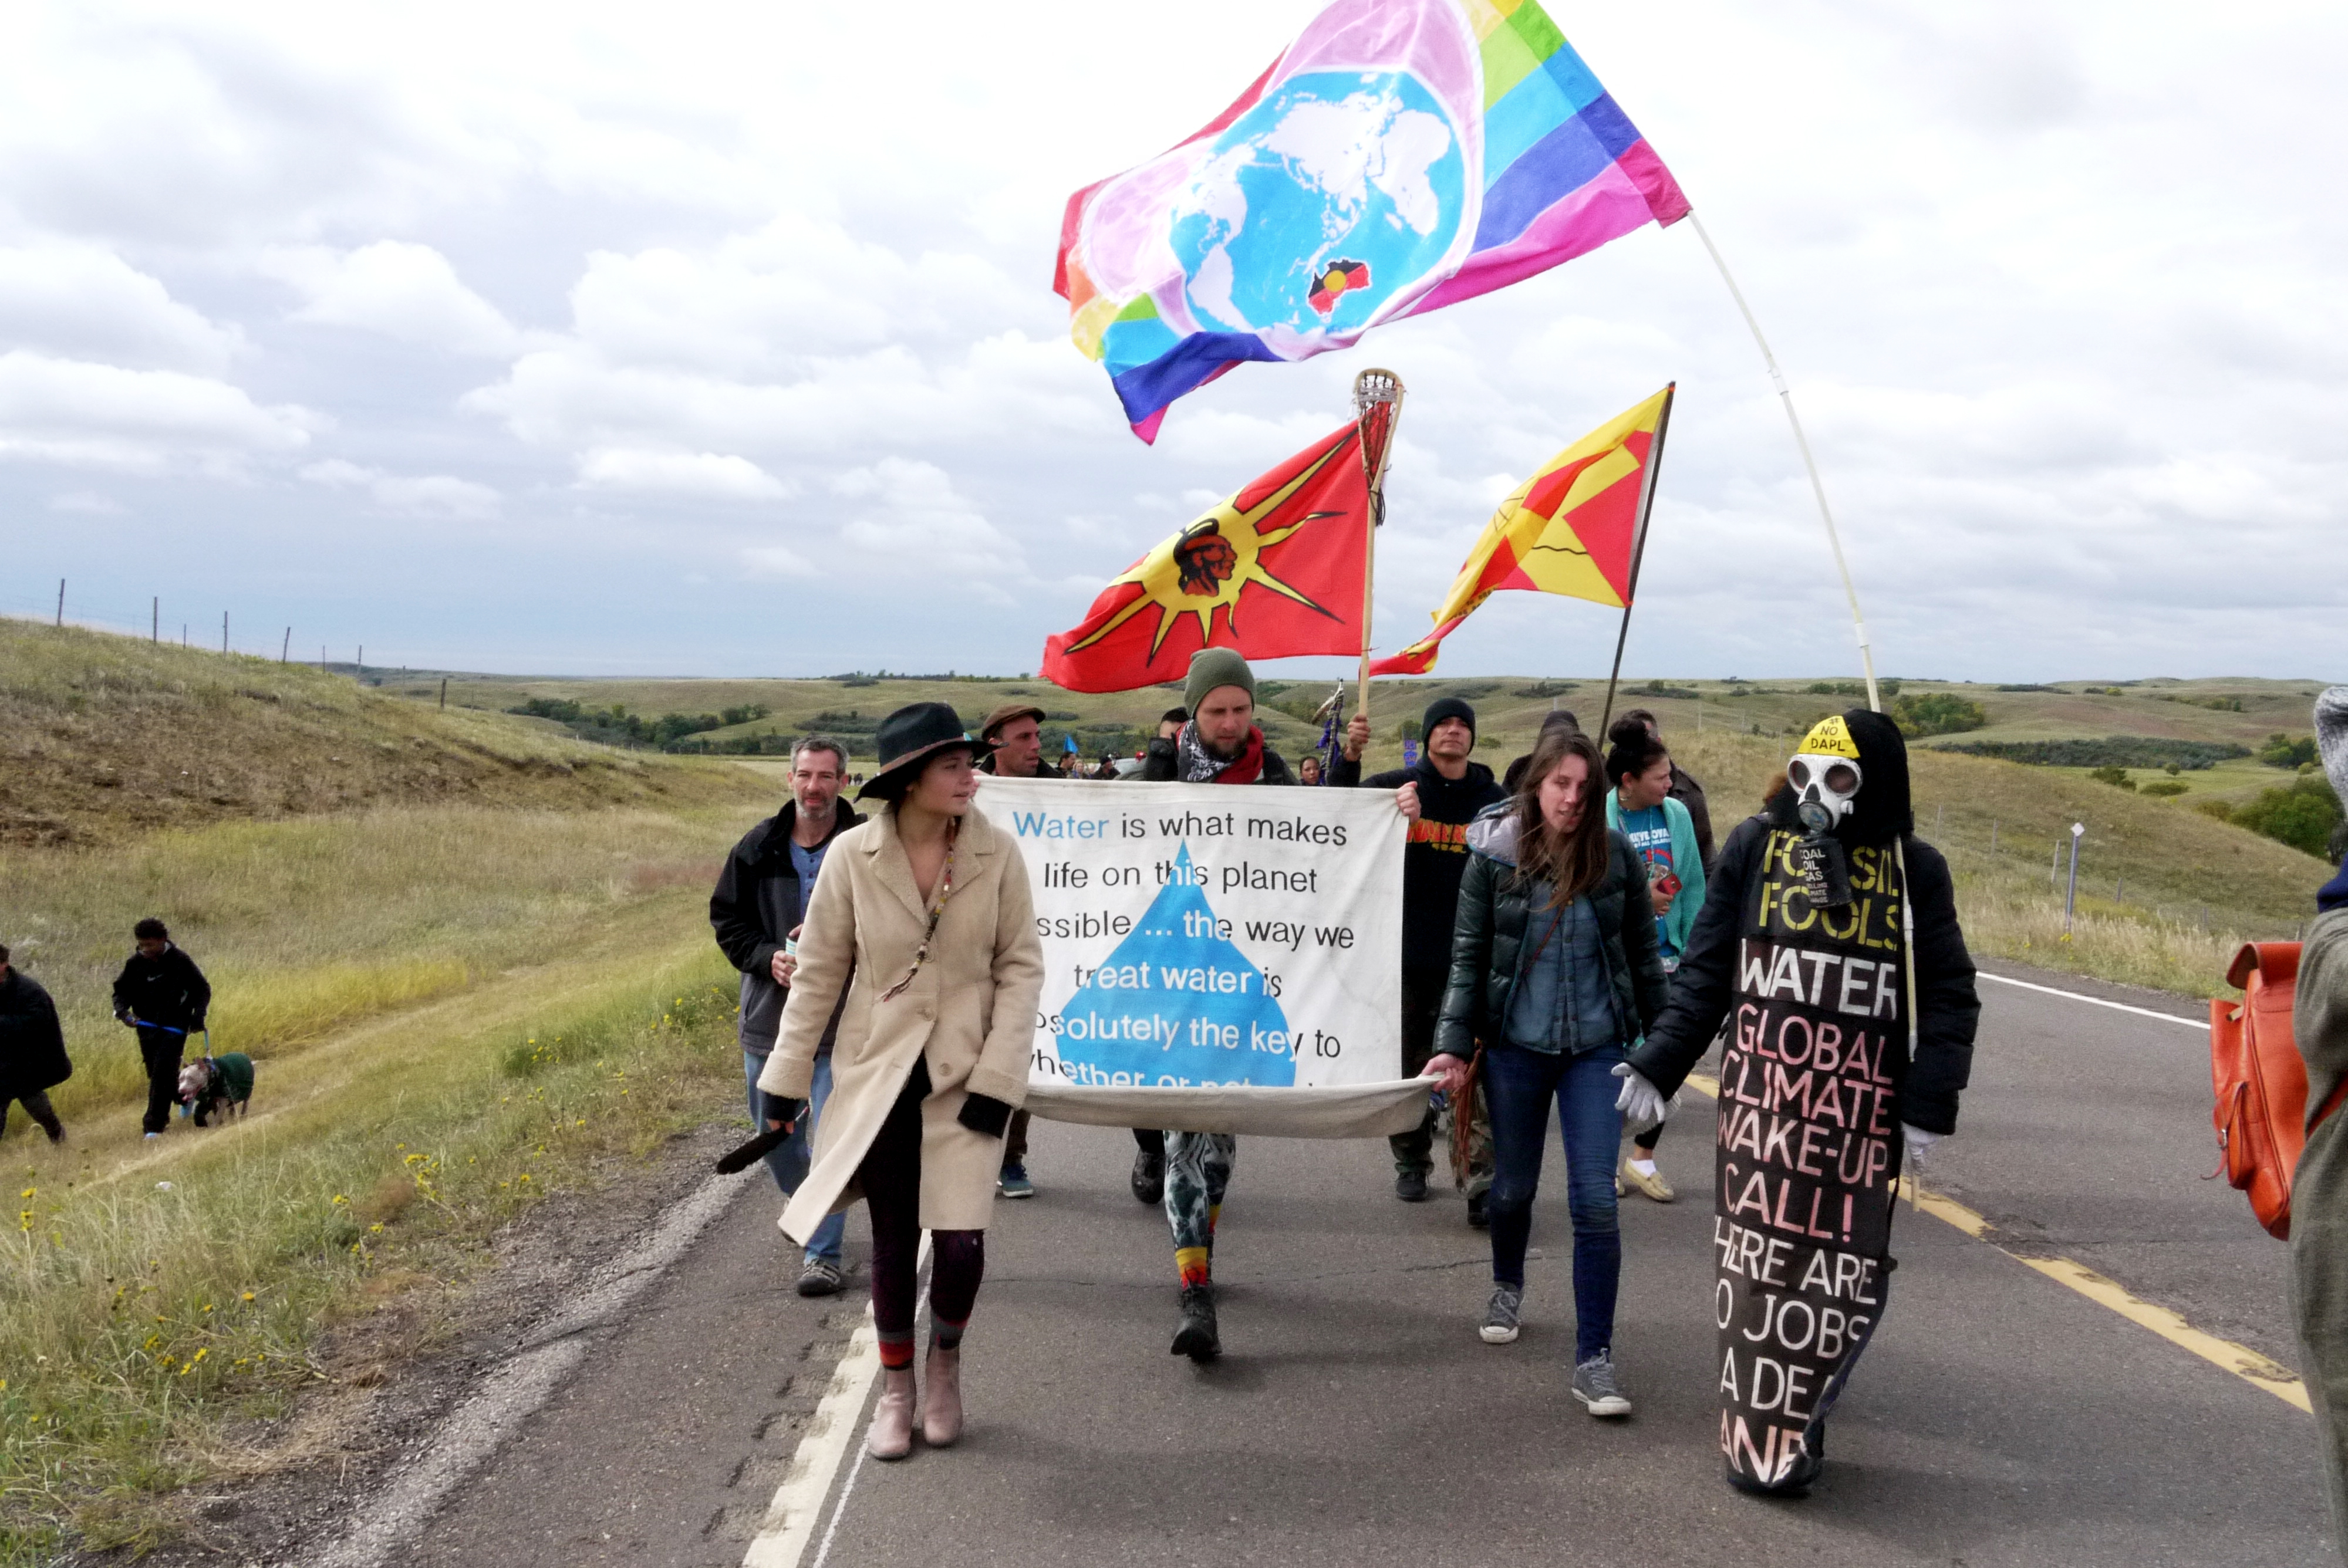 People from the Oceti Sakowin camp walking to the Dakota Access Pipeline construction site near the Missouri River, whose waters they say they are trying to protect, Sept. 13, 2016. (Sarah Jaffe for BillMoyers.com)